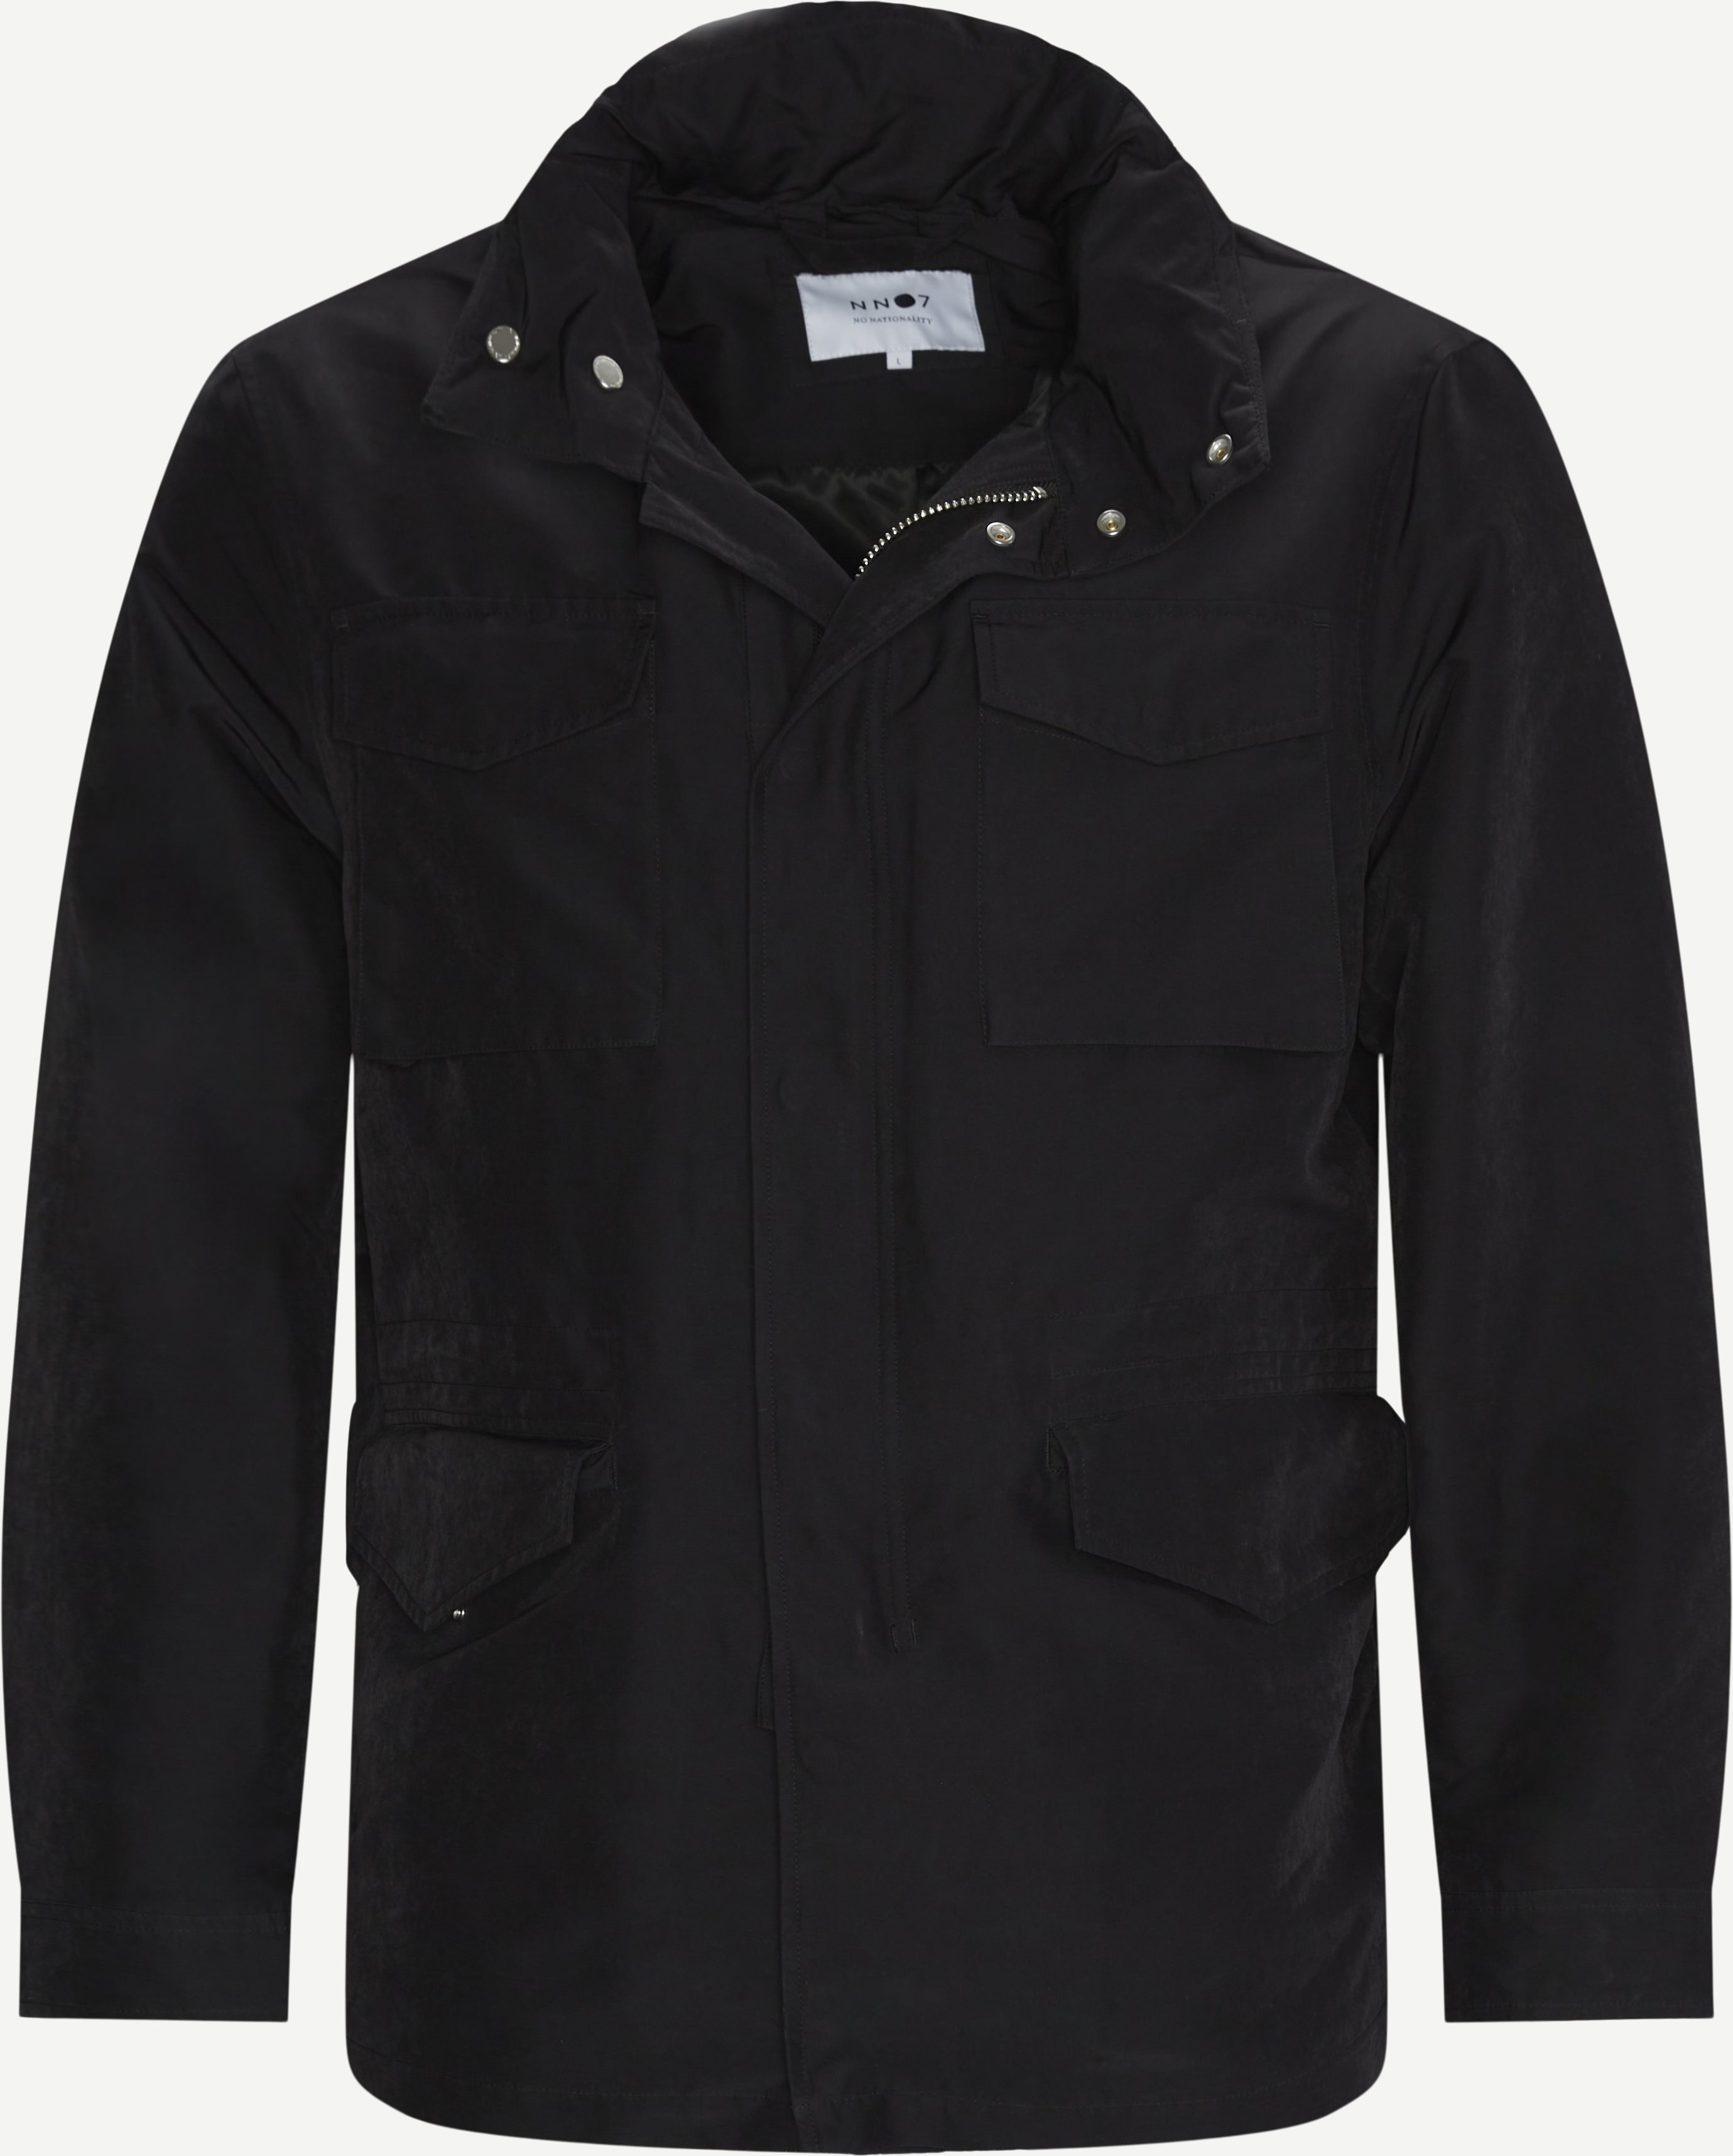 Field Jacket - Jakker - Regular - Sort